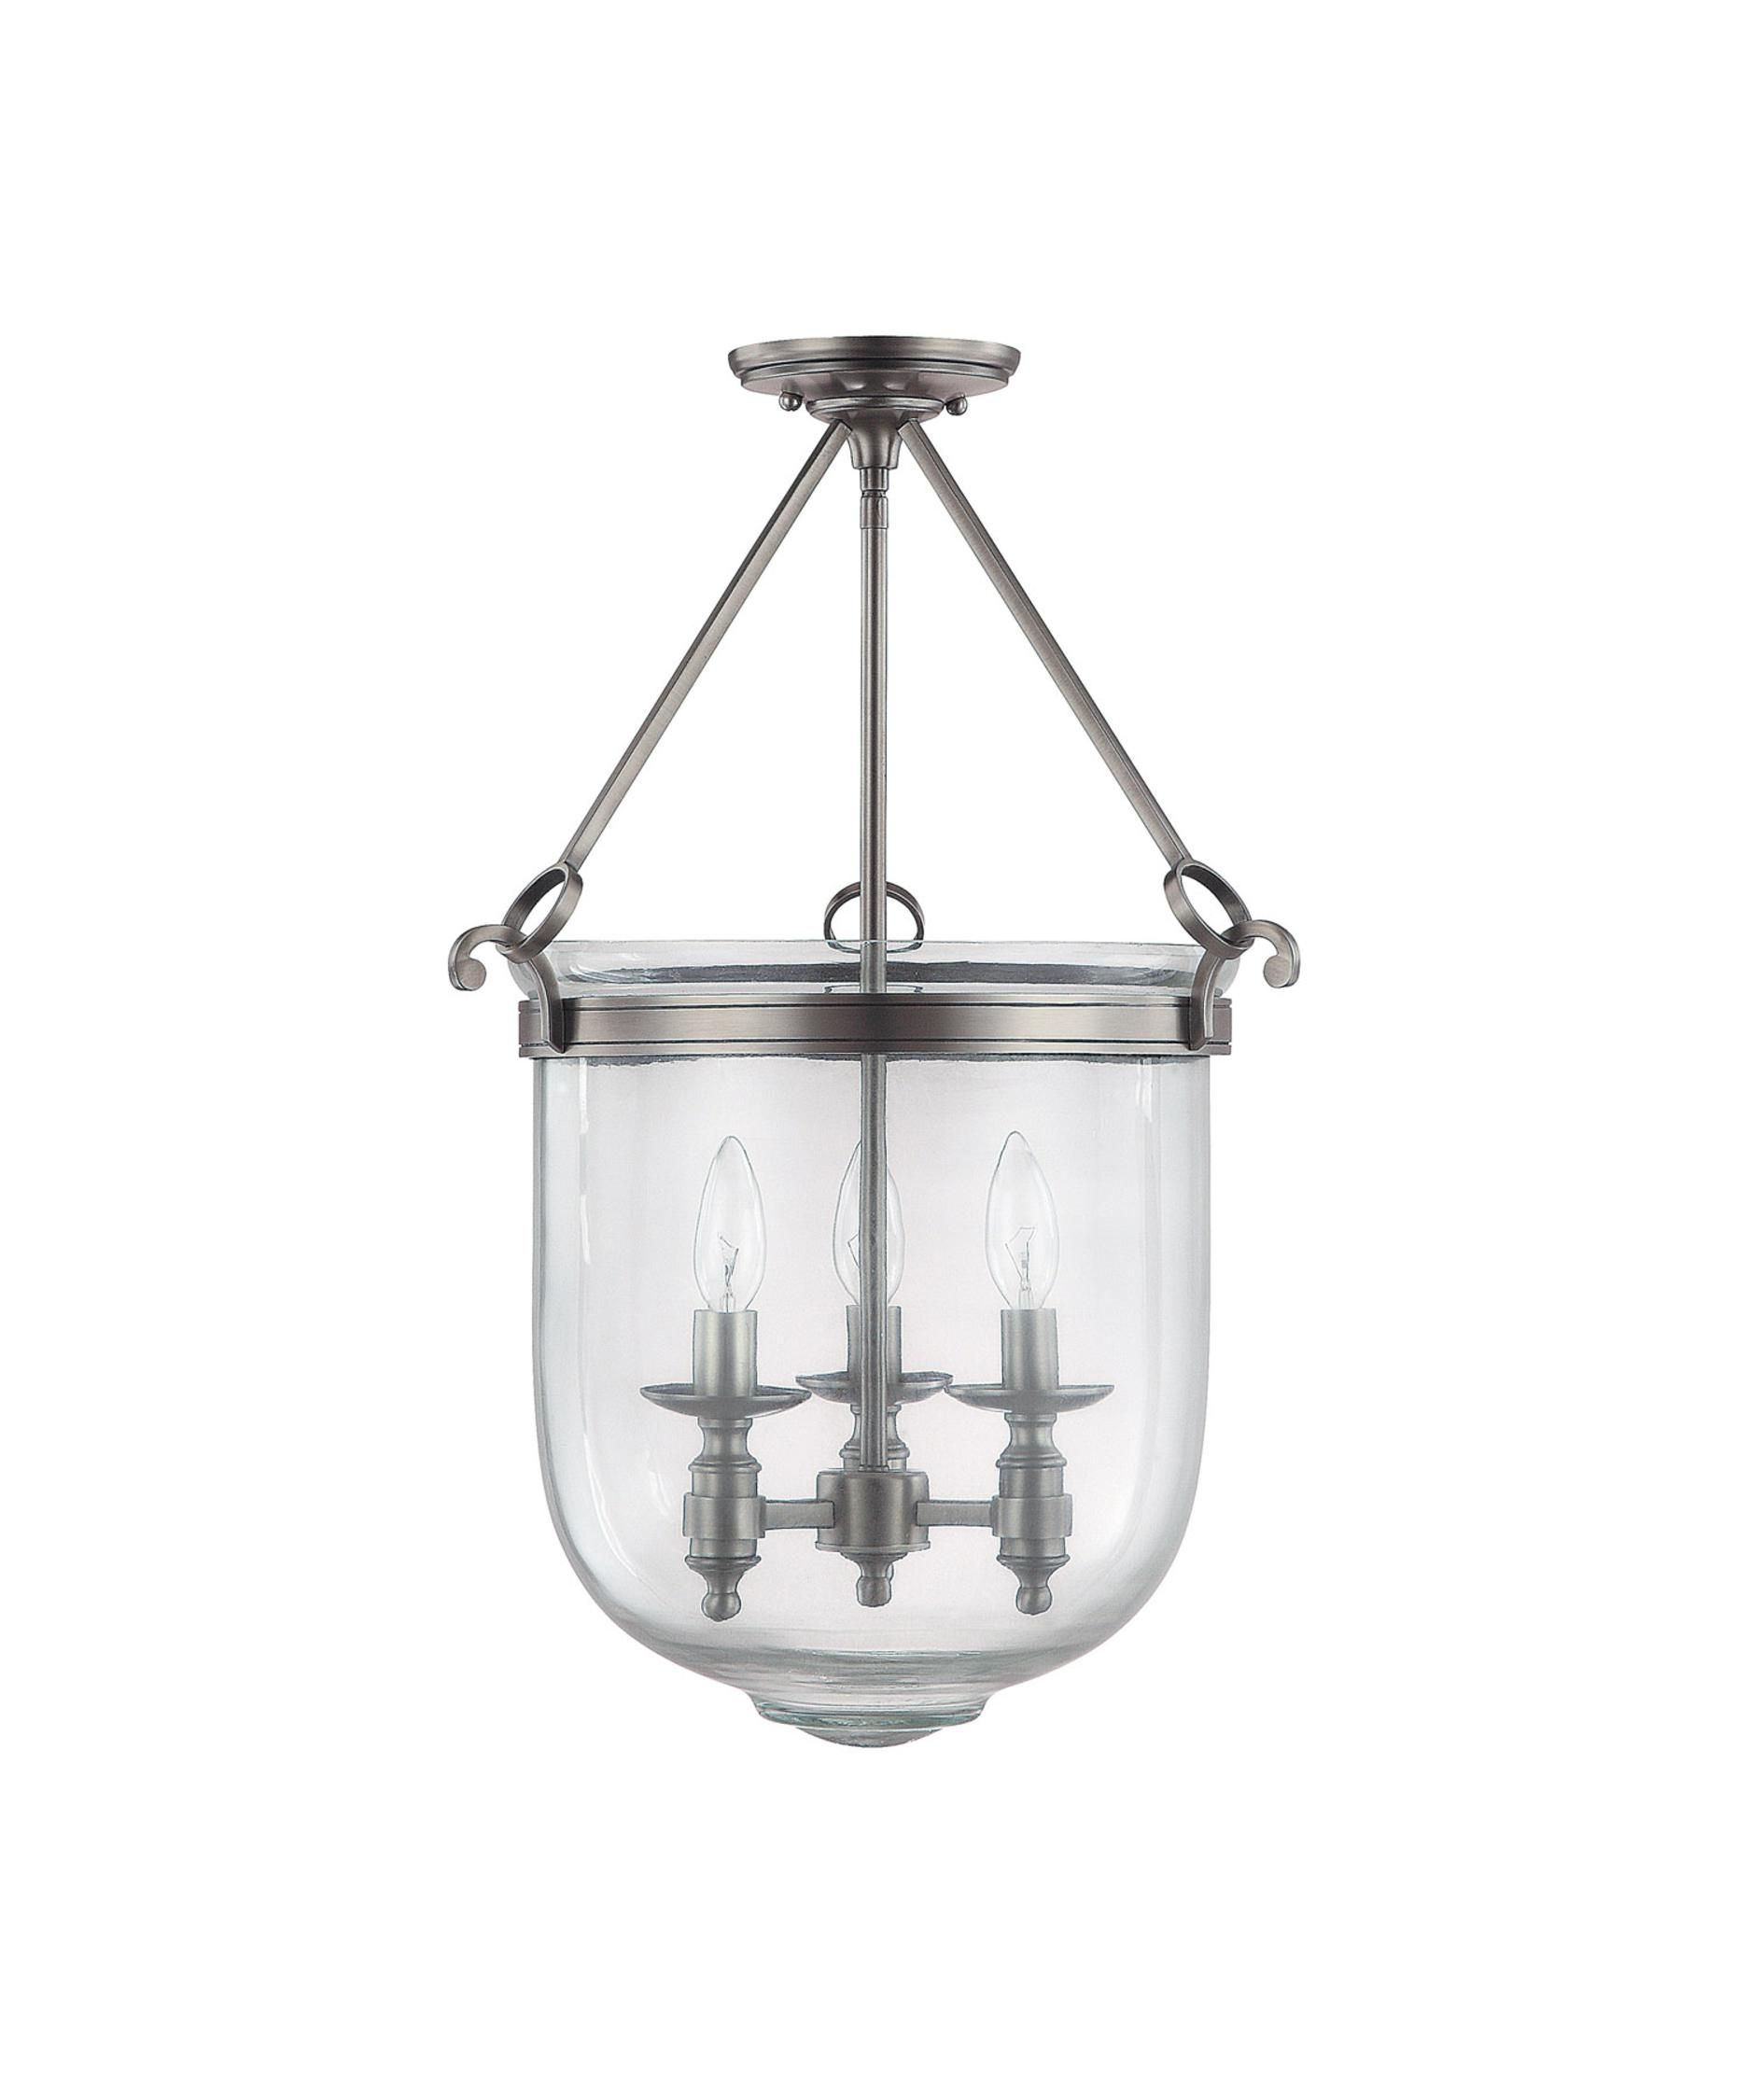 modern dining room in buy pendant lantern light lighting drum to crystal lights hang